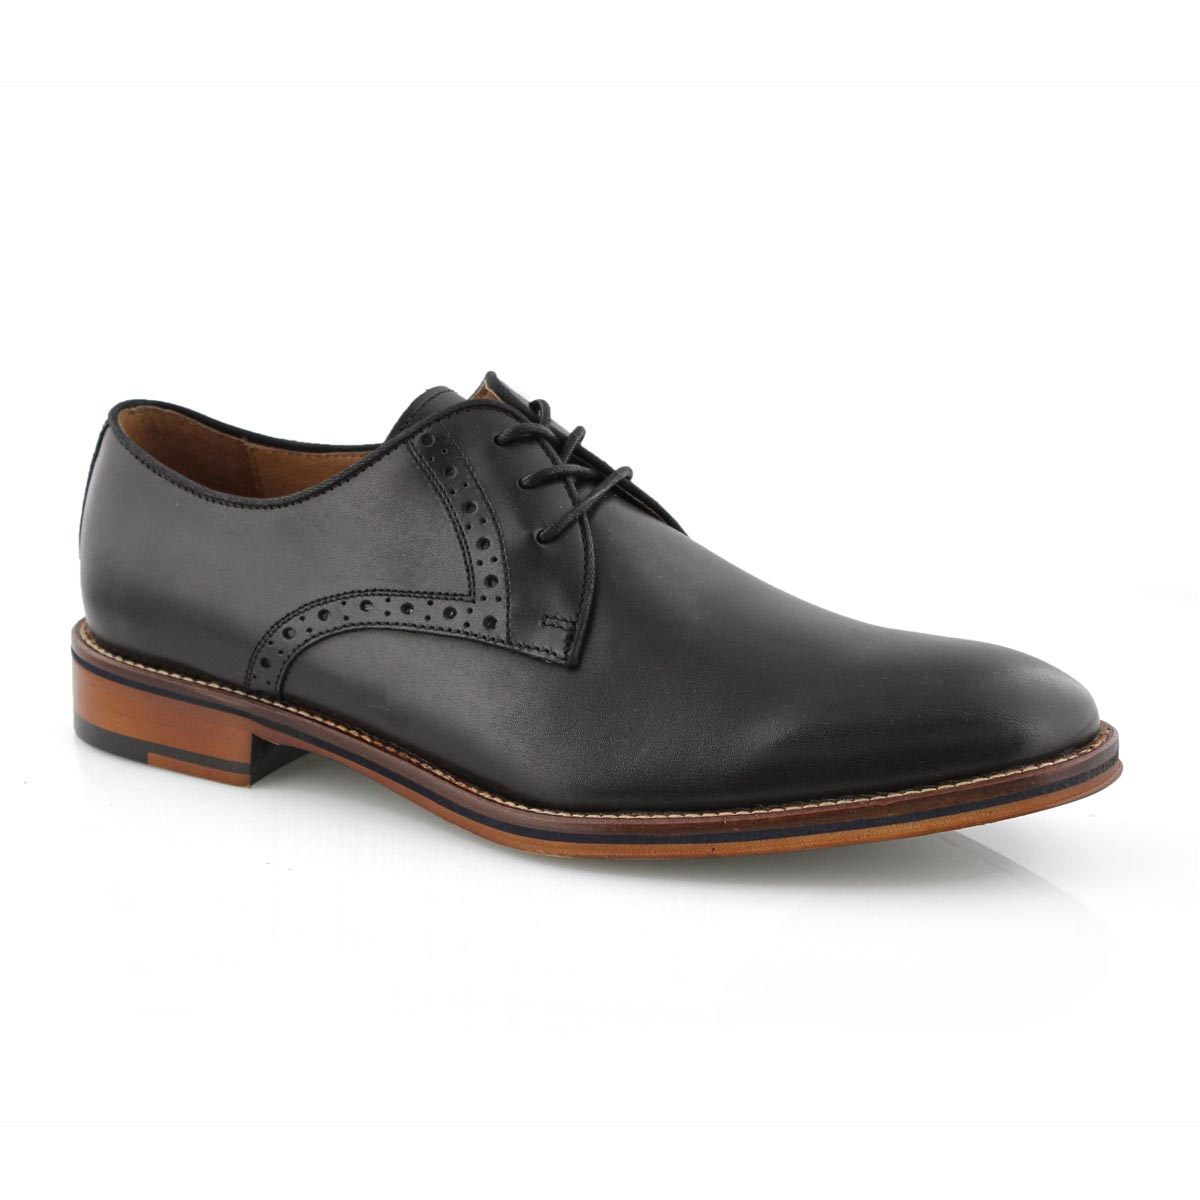 MXL Mens Business Shoes Matte PU Leather Upper Slip-on Lined Oxfords Block Heel Driving Shoes